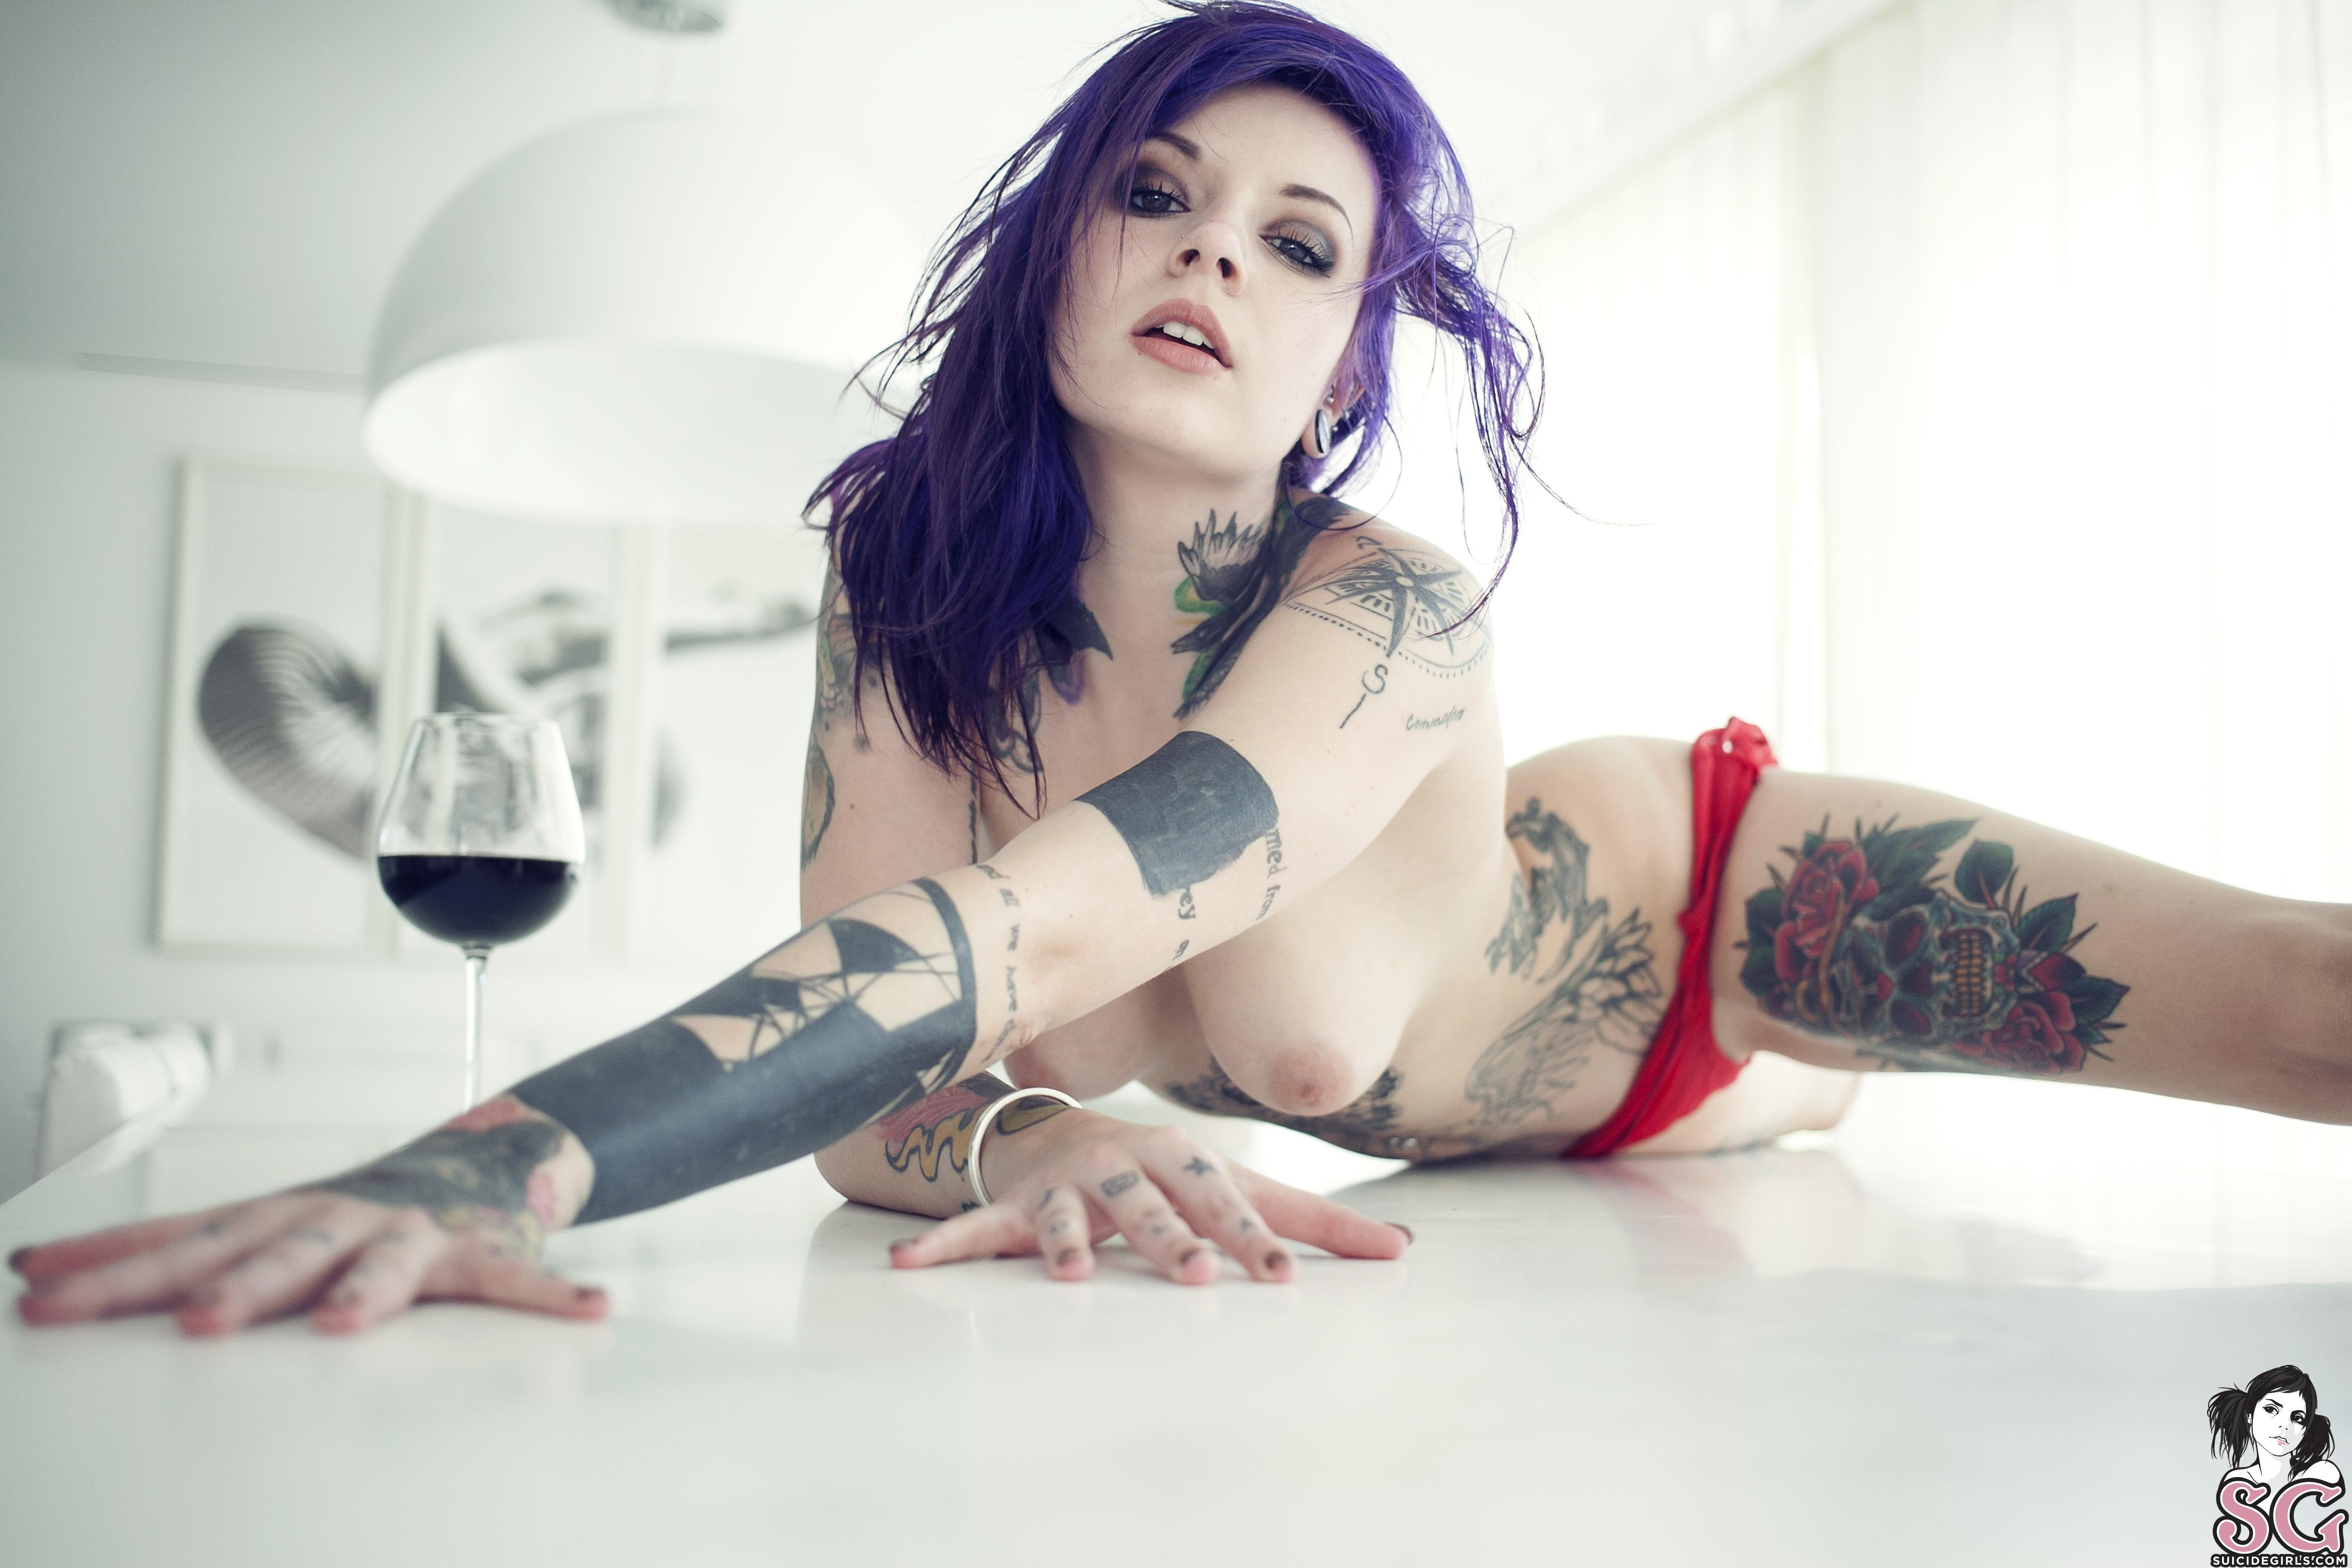 Girls tattoos topless with Category:Nude women